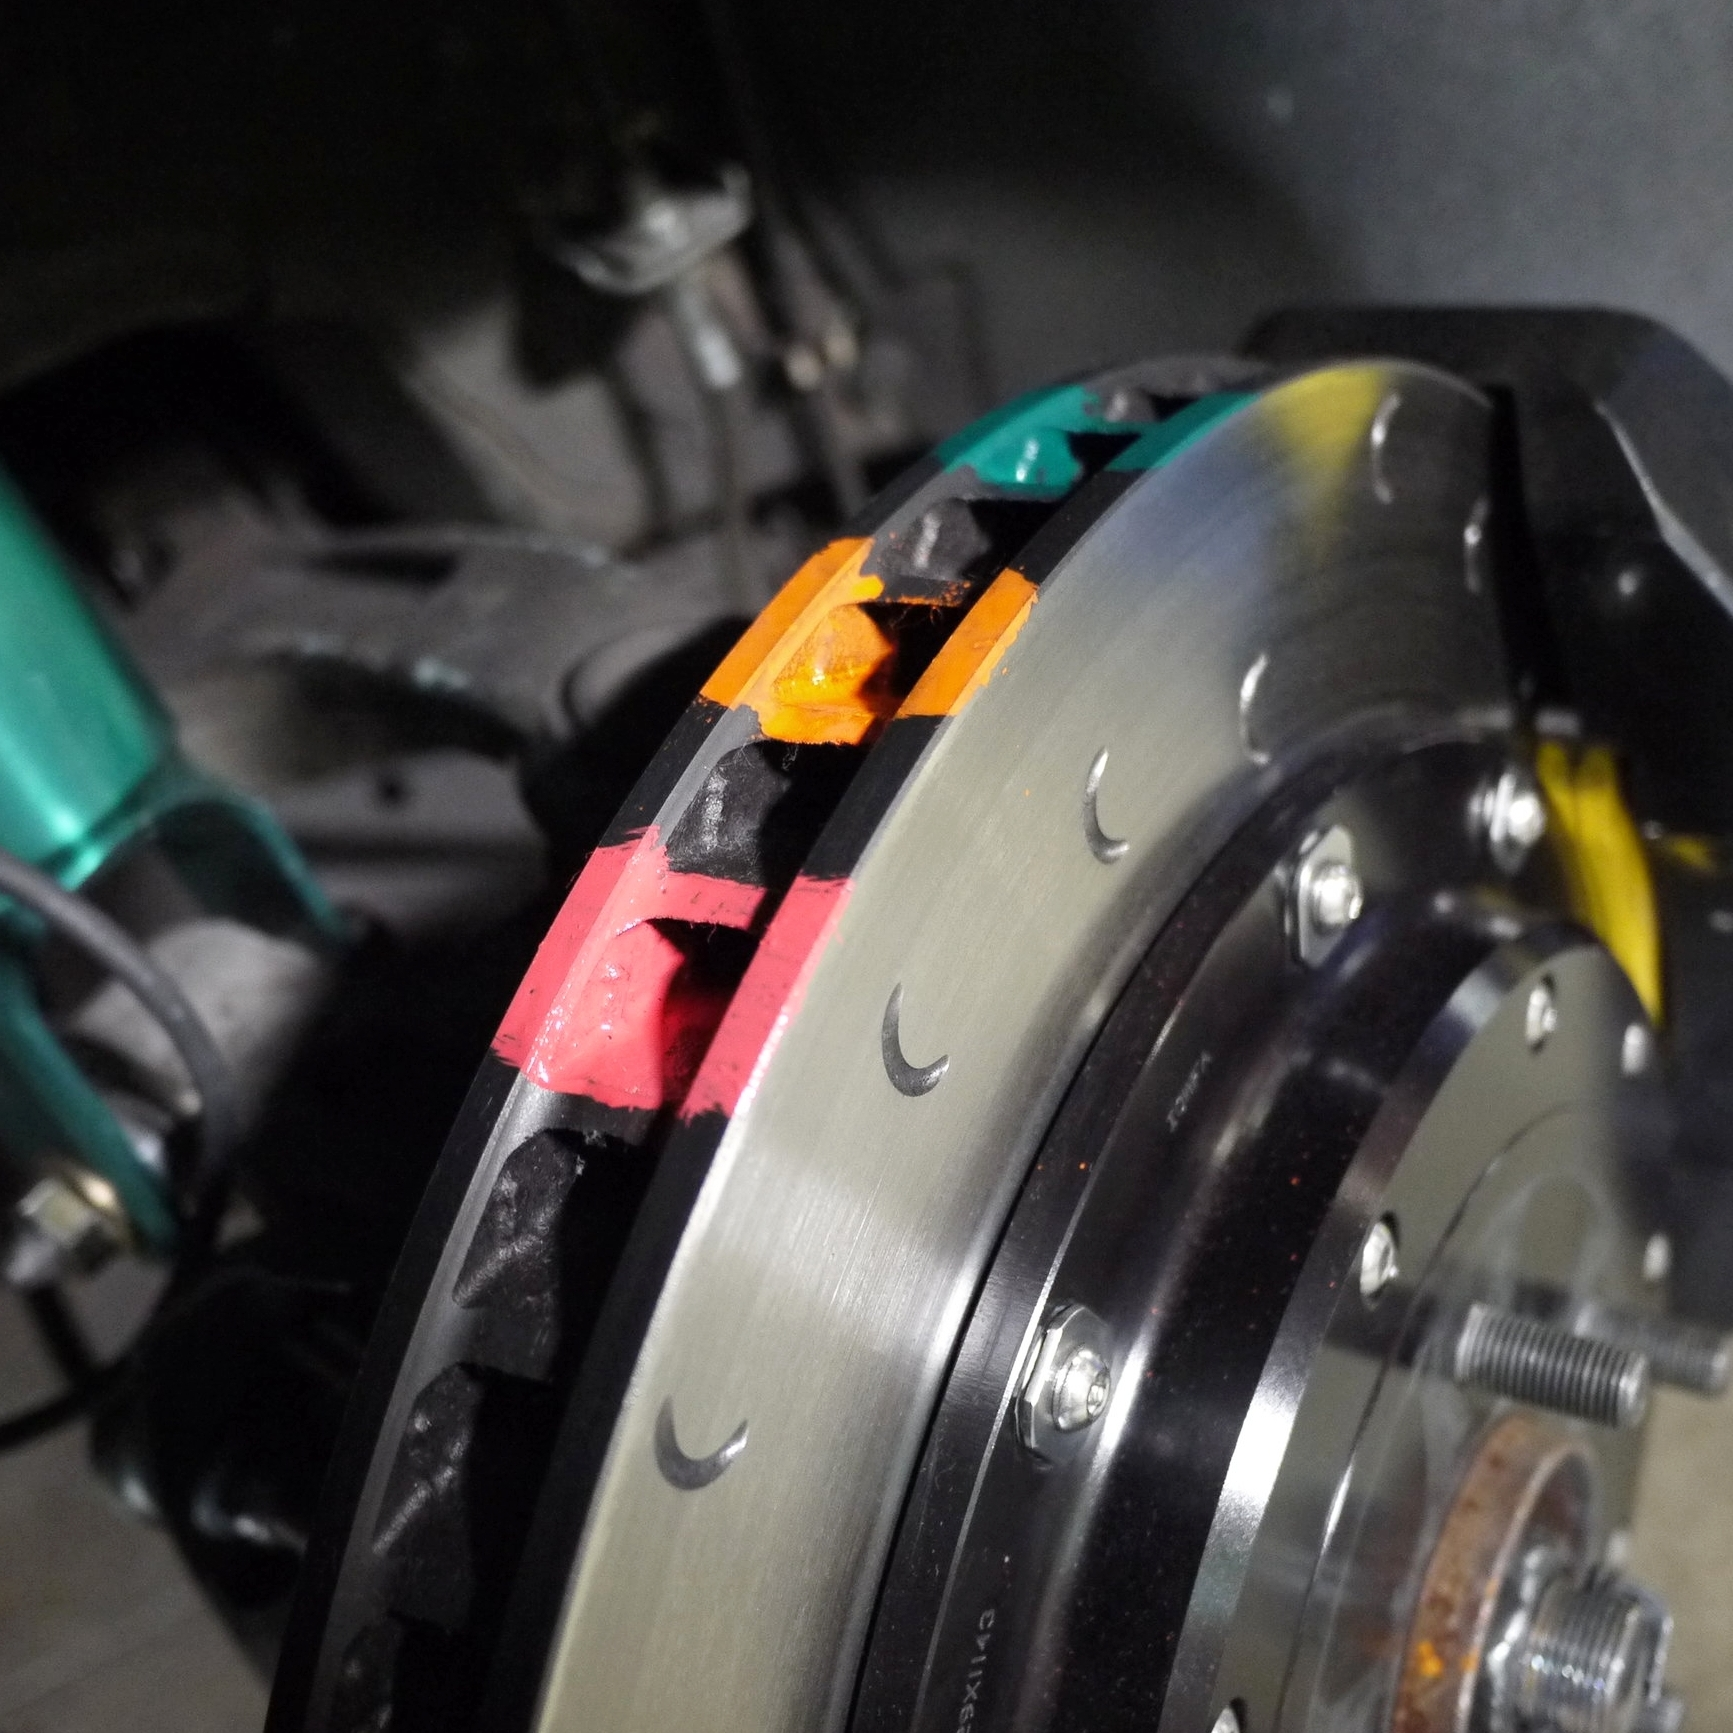 STEP 4 - Apply each color in the specific order of temperature thresholds. The Green paint oxidizes at the lowest temperature, while the red paint has the highest temperature resistance.Be sure to apply the paints to the friction rubbing surfaces and inner vanes of the brake disc. There are variations in the temperature at the rubbing surfaces versus the inner vanes (disc core temperature).